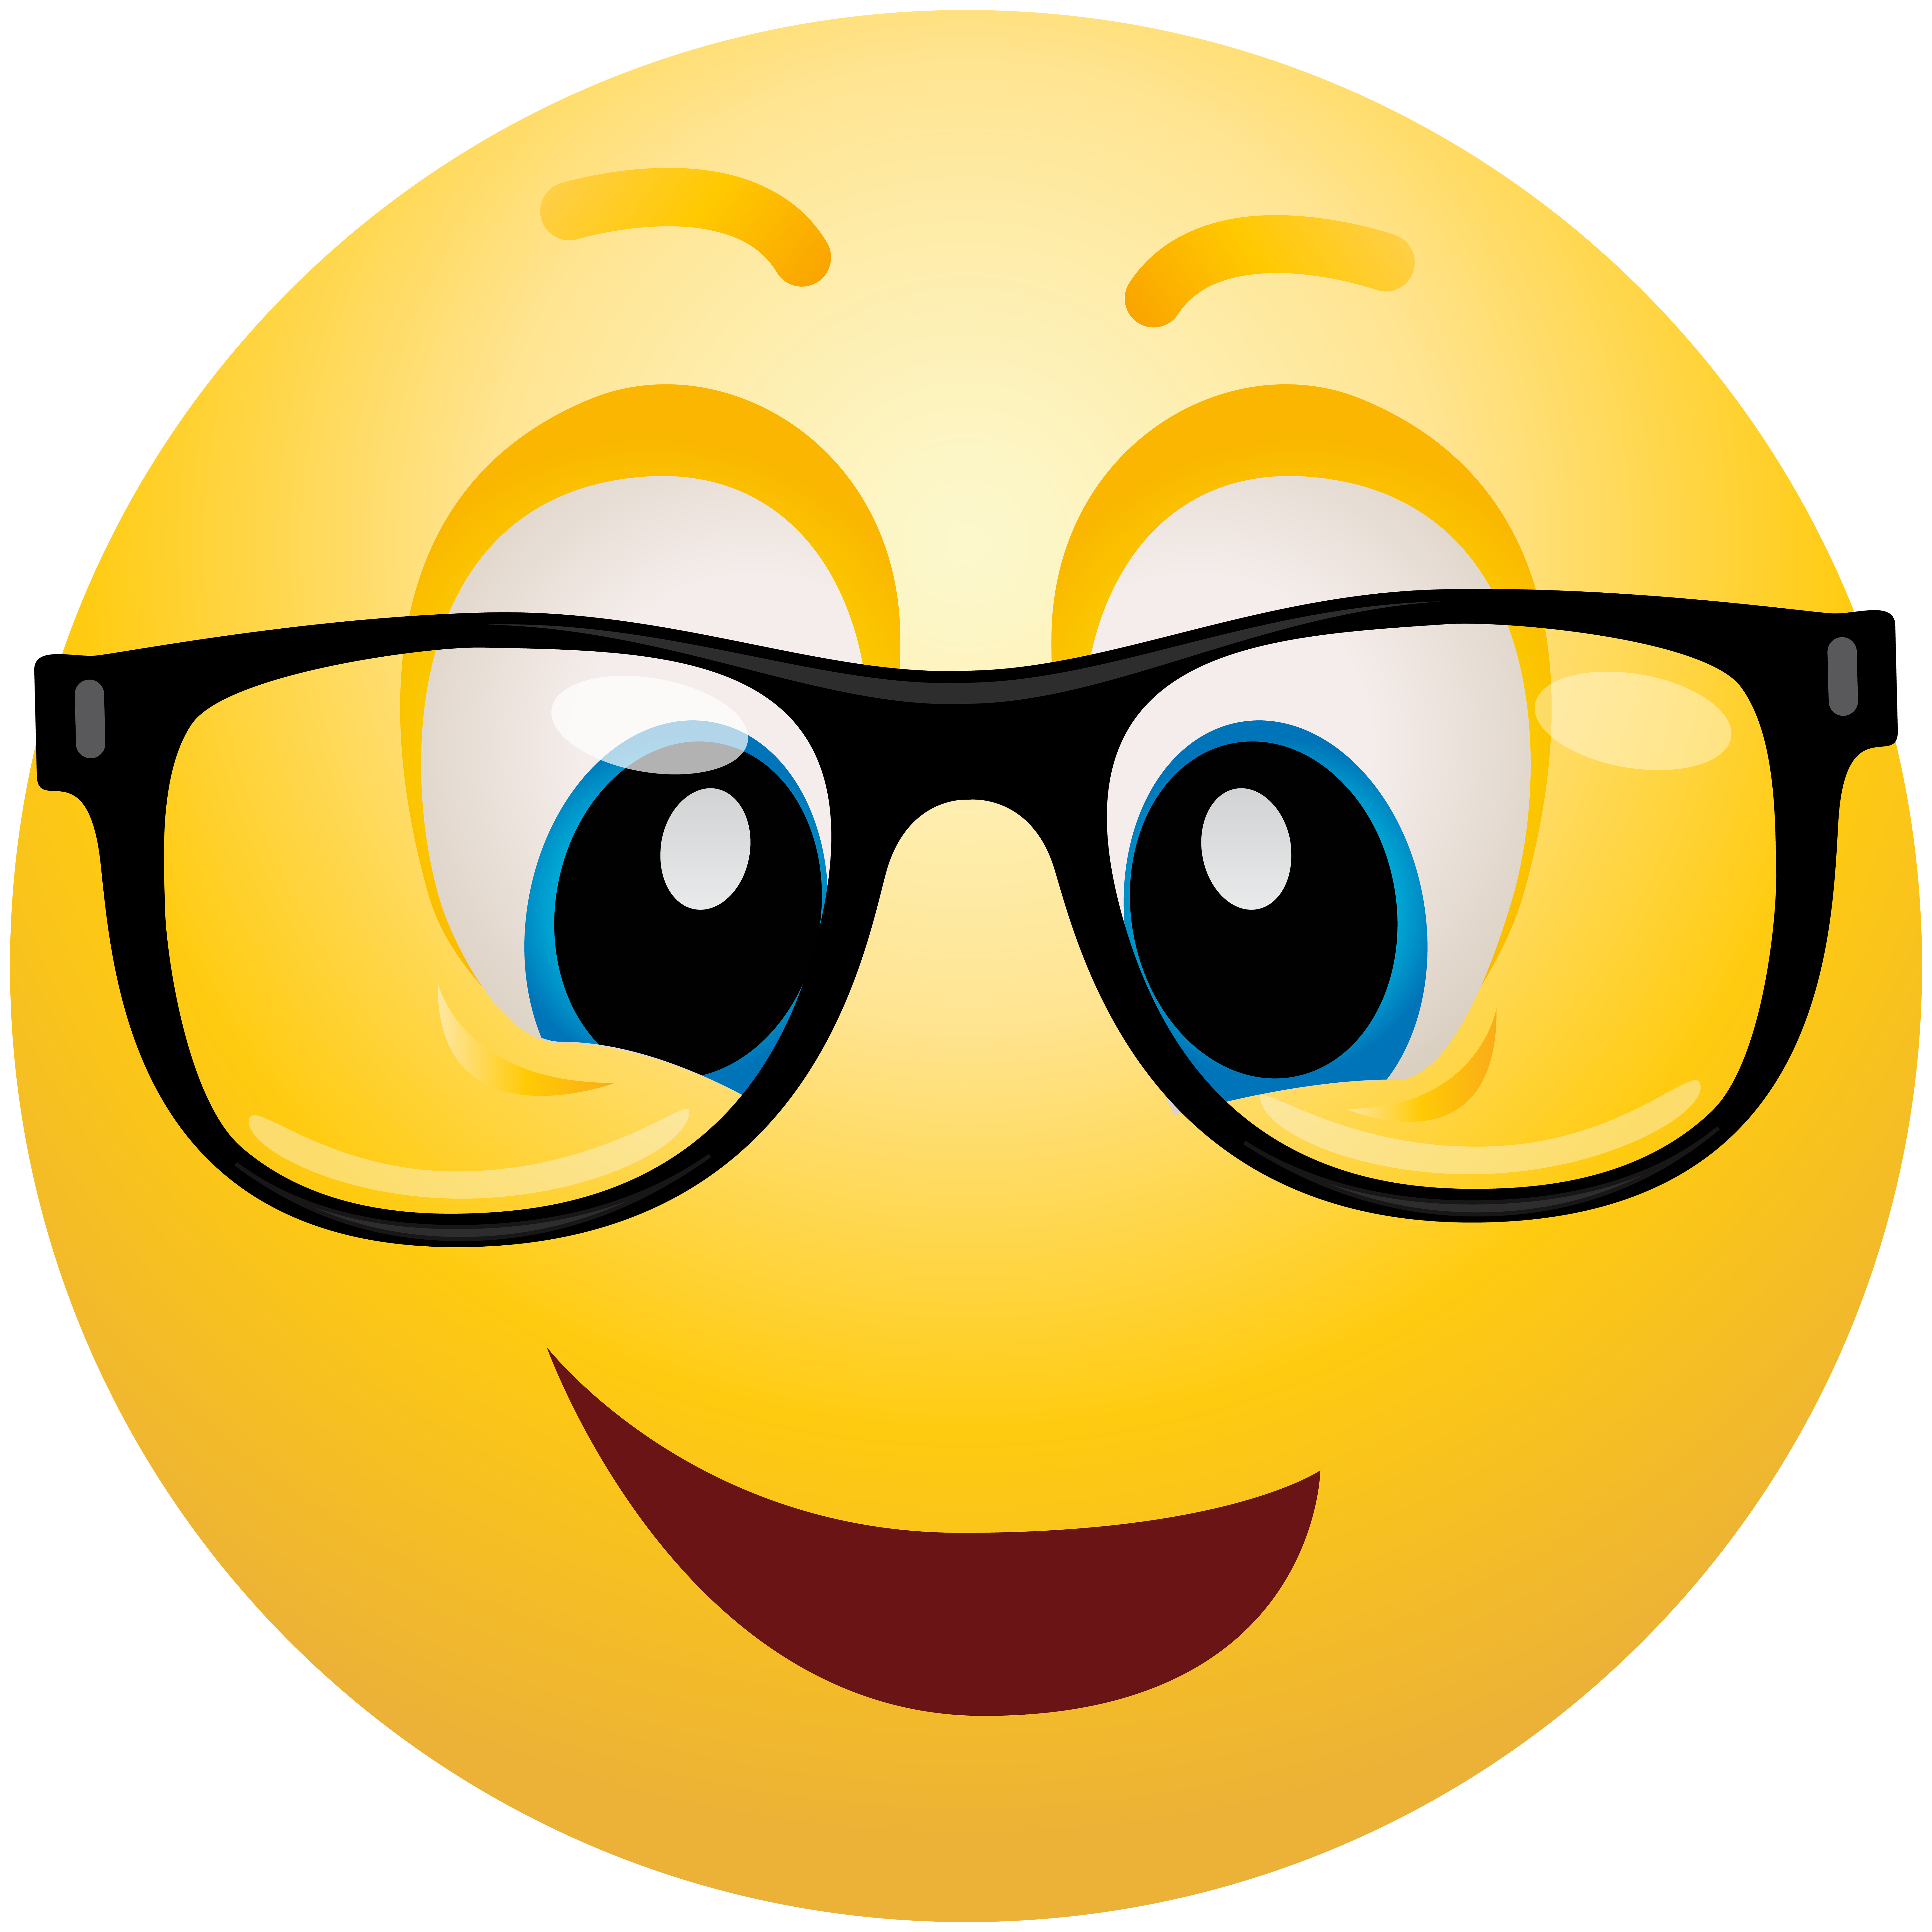 Geek emoticon png clip. Glass clipart face